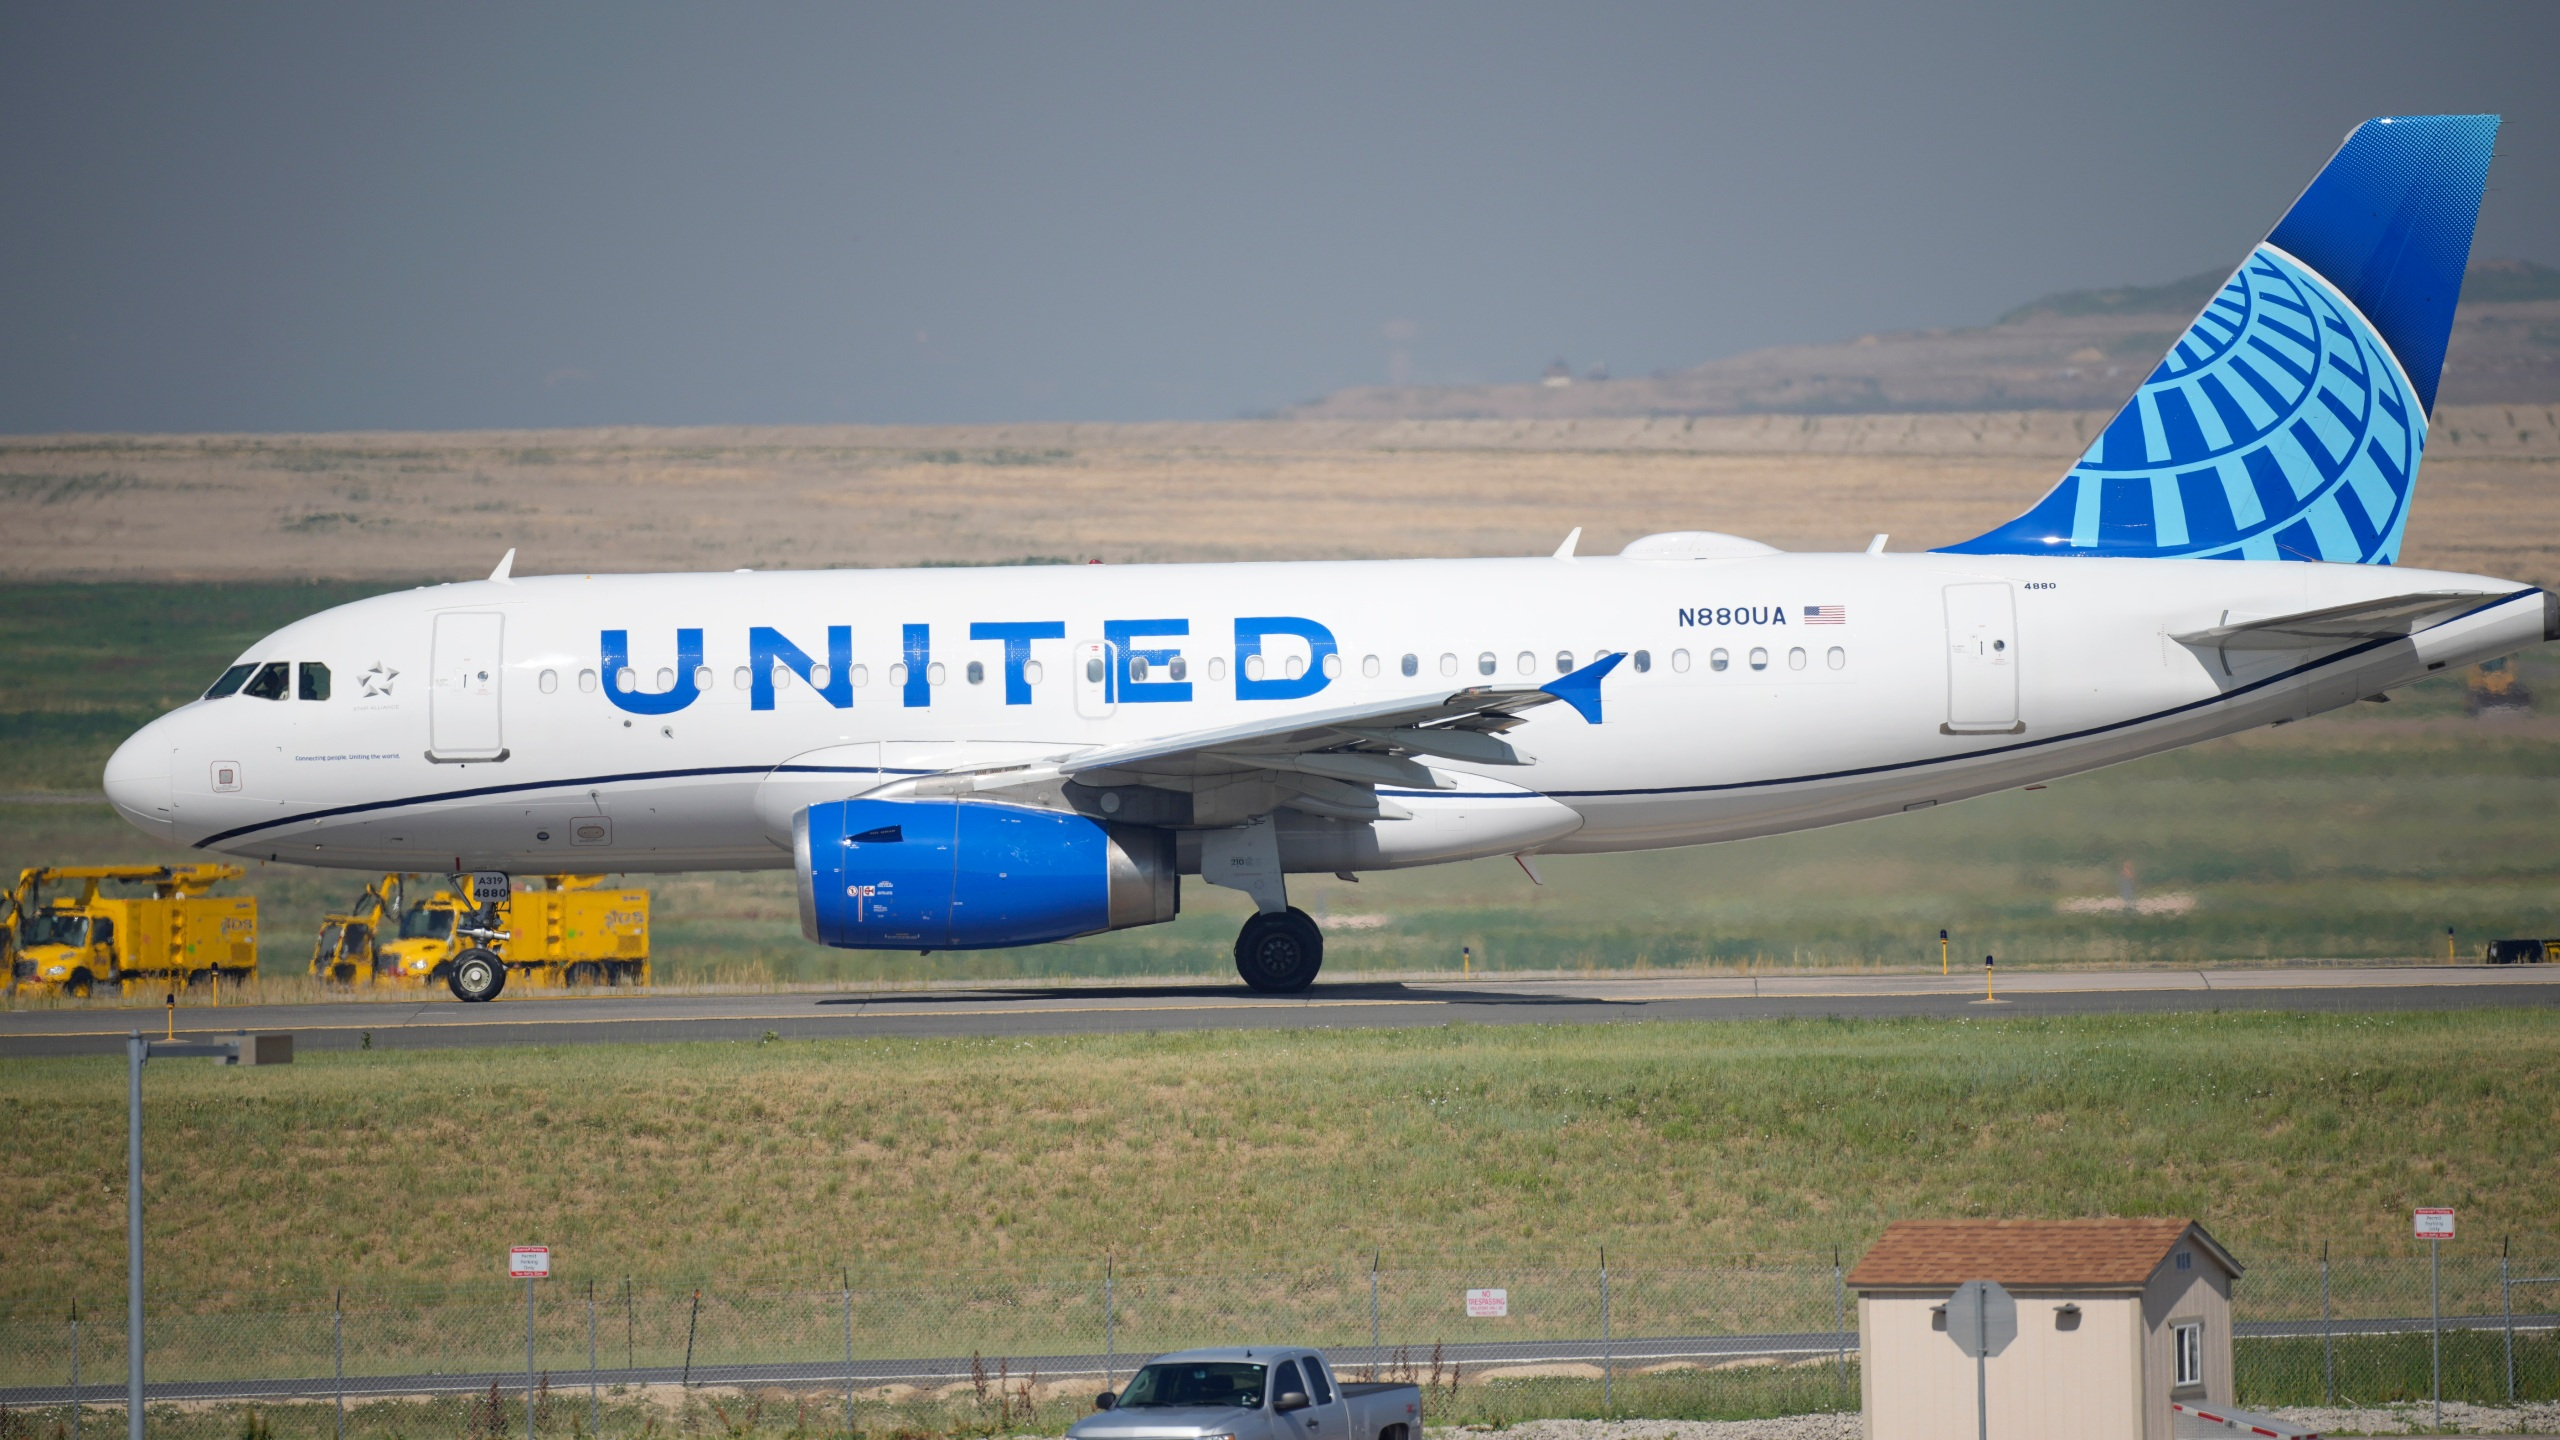 In this July 2, 2021 file photo, a United Airlines jetliner taxis down a runway for take off from Denver International Airport in Denver. United Airlines will require U.S.-based employees to be vaccinated against COVID-19 by late October, and maybe sooner. United announced the decision Friday, Aug. 6. (AP Photo/David Zalubowski, file)